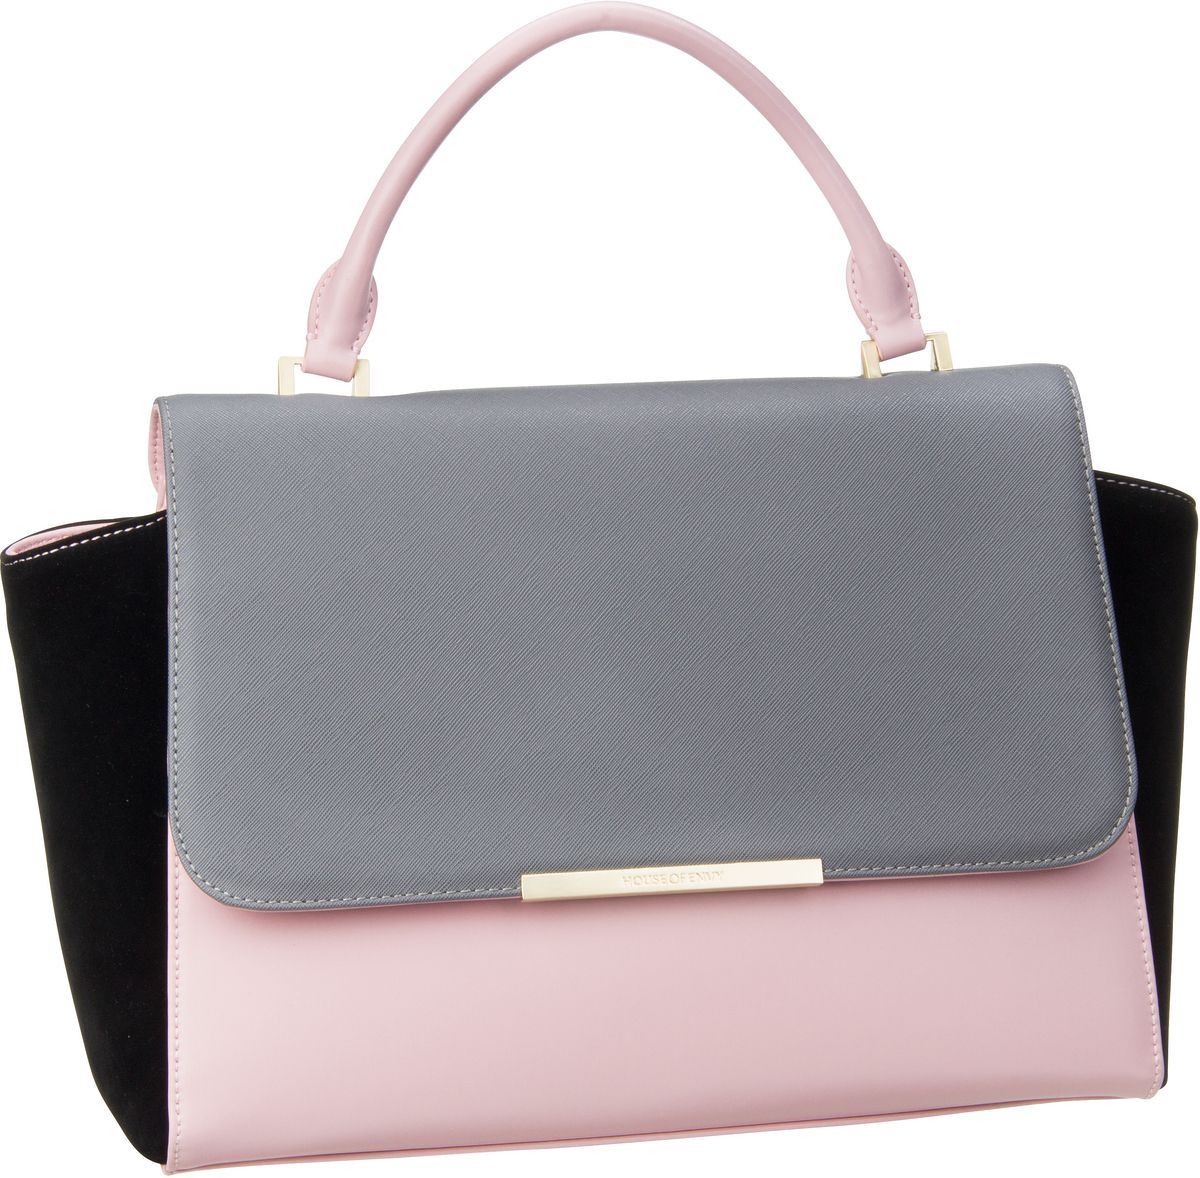 House of Envy Luxurious Grey Combi - Handtasche